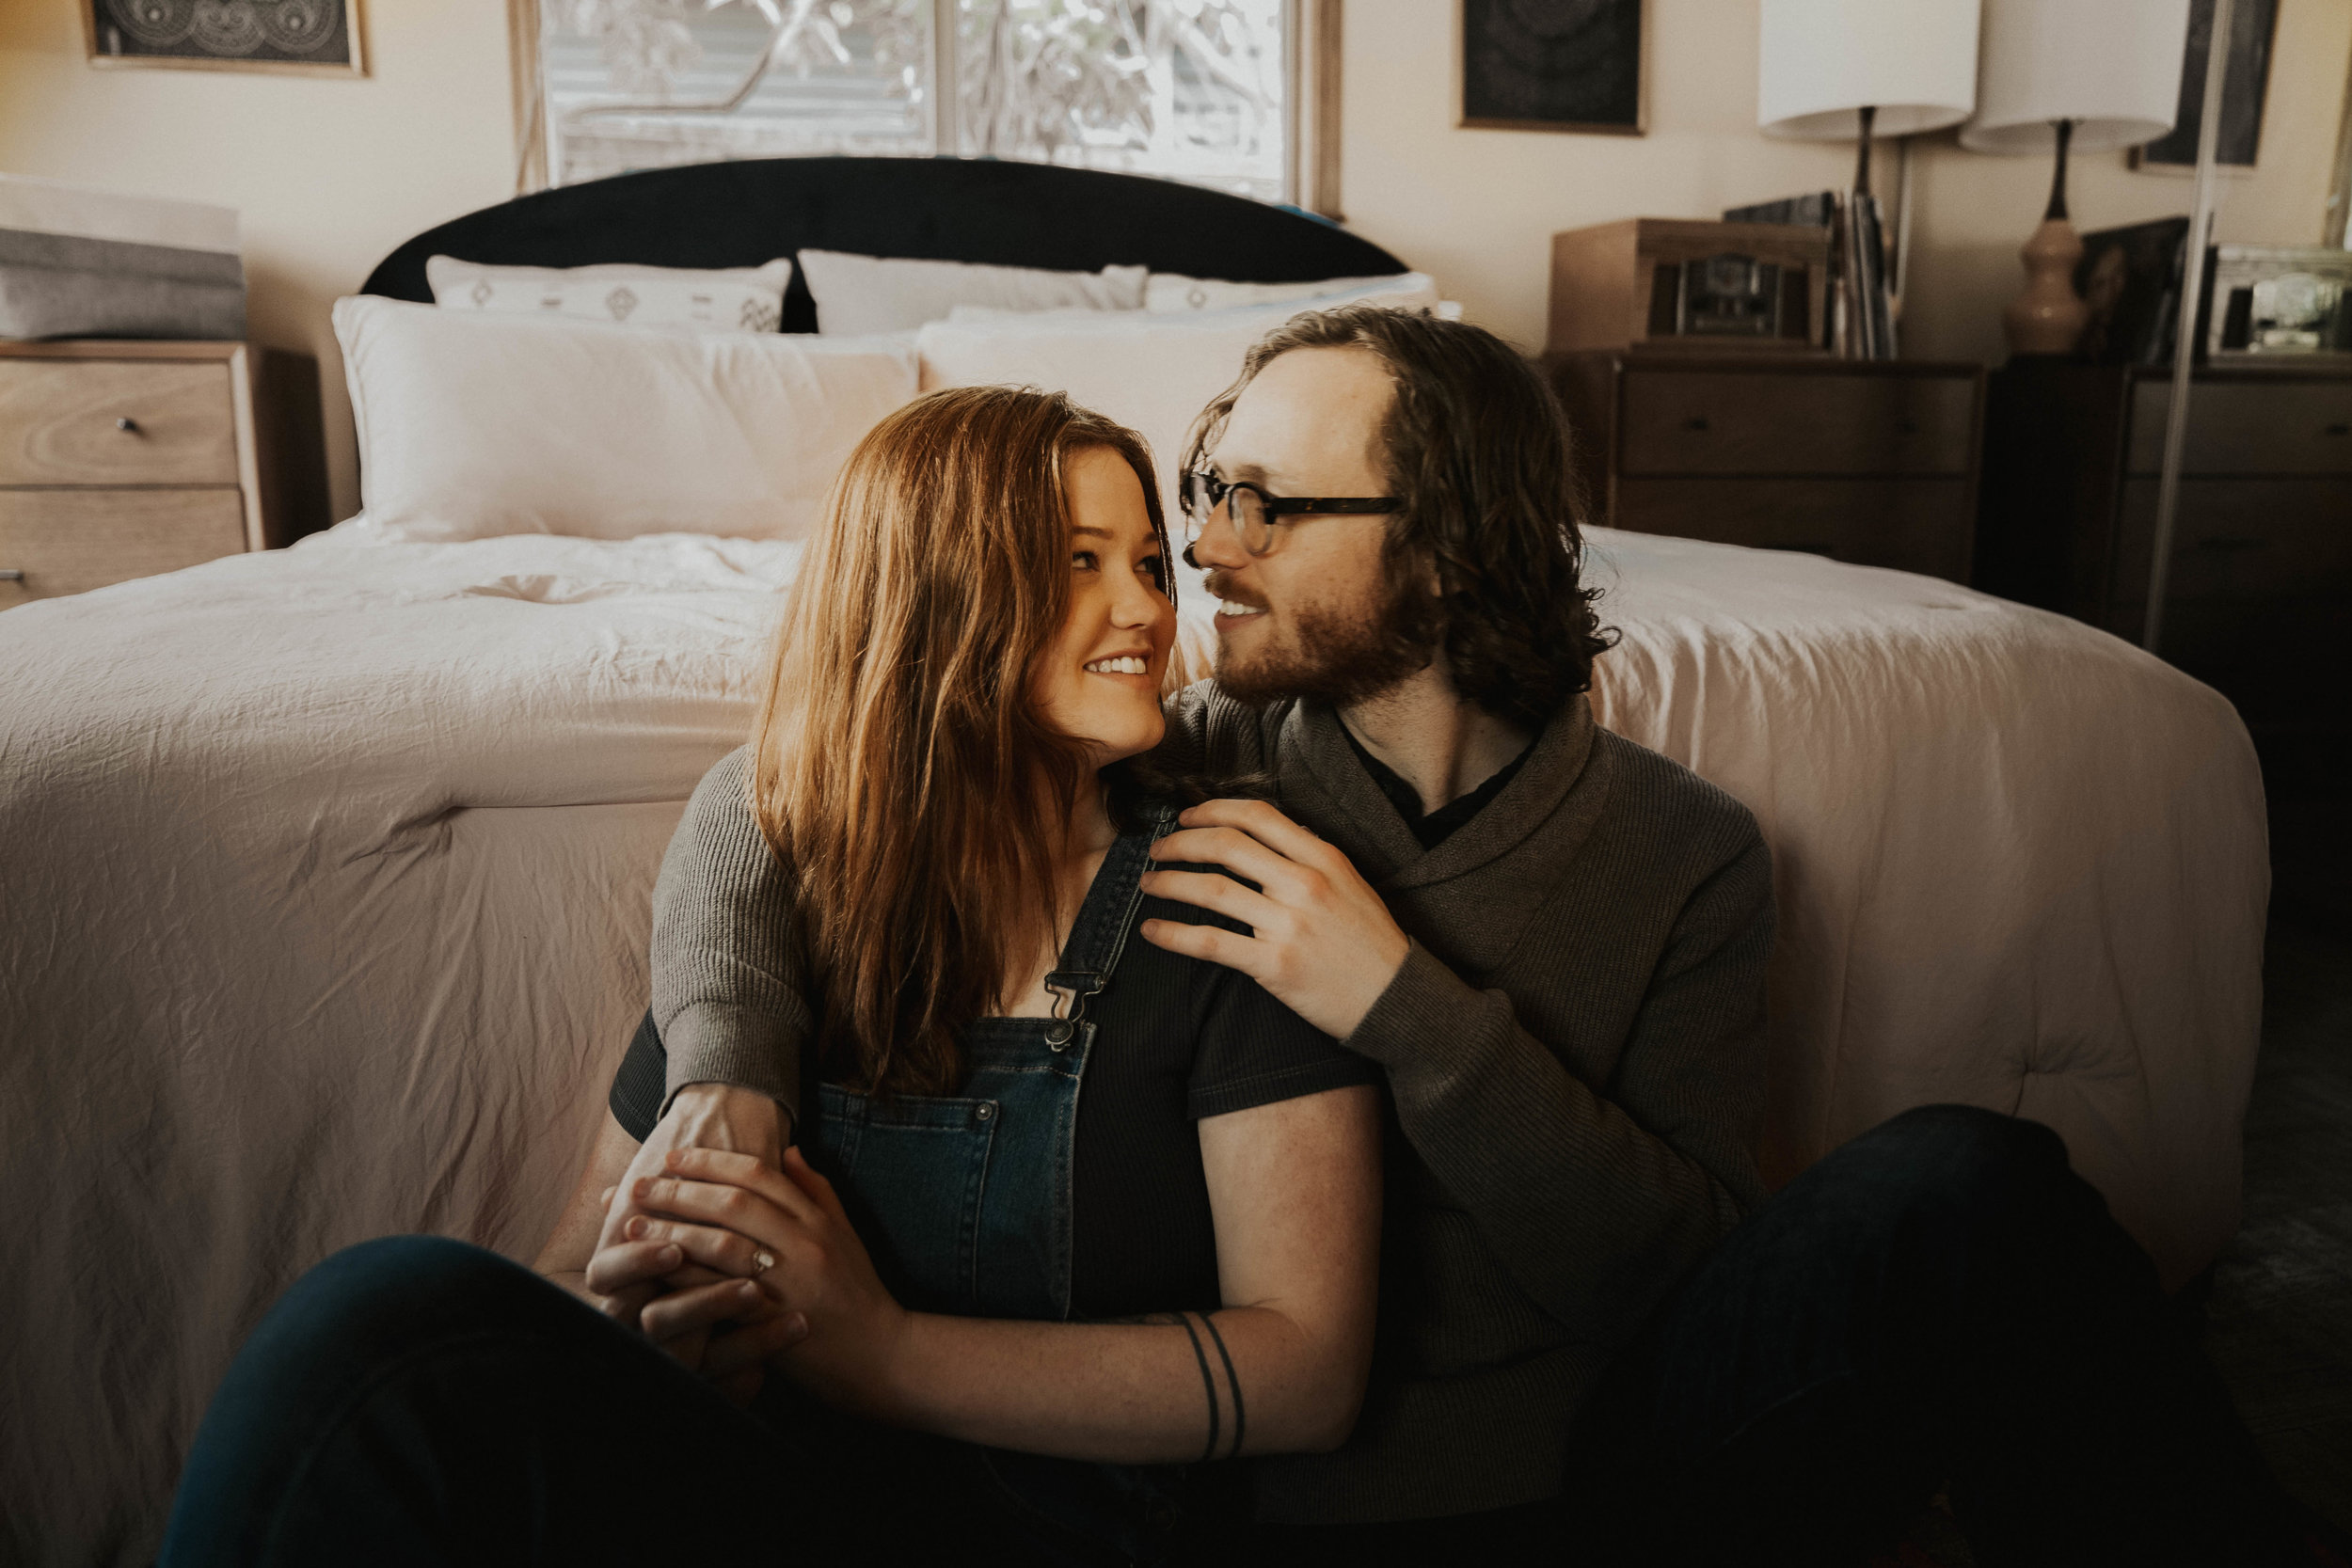 seattle-washington-wedding-and-elopement-photographer-who-travels-and-lives-the-van-life-in-a-van